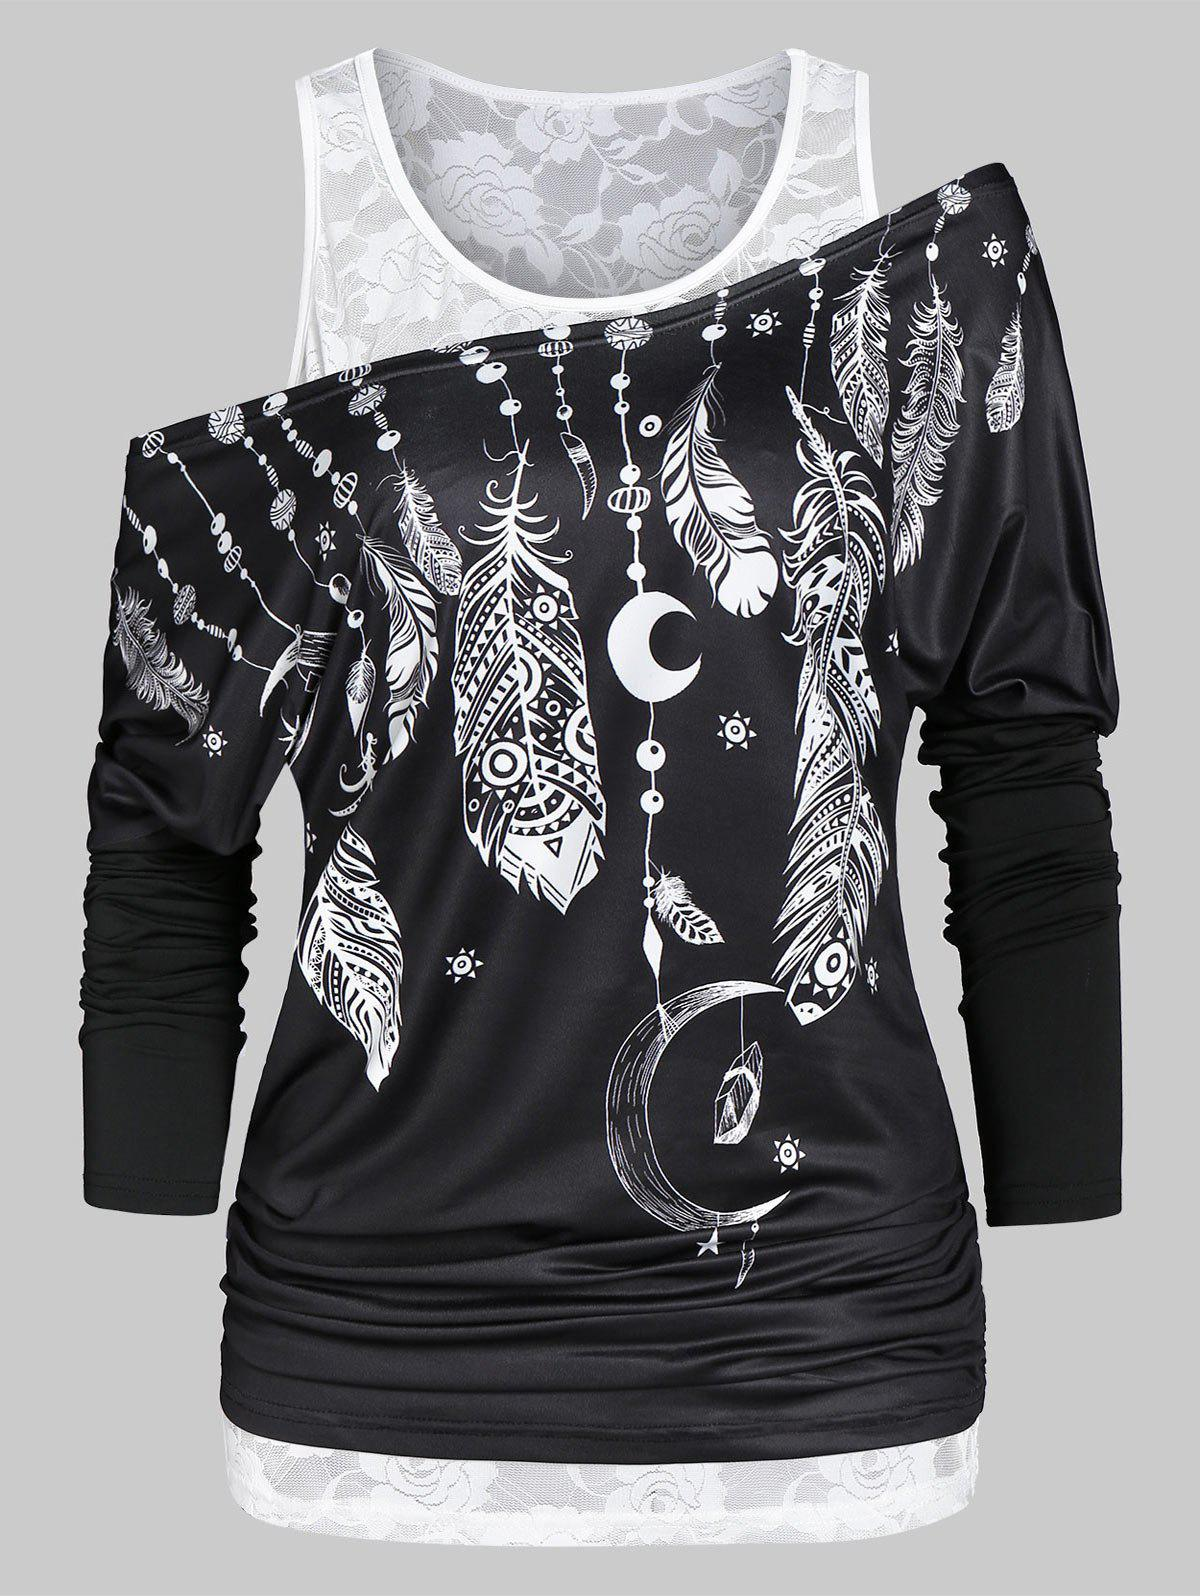 Printed Skew Collar T Shirt with Lace Tank Top - BLACK 2XL